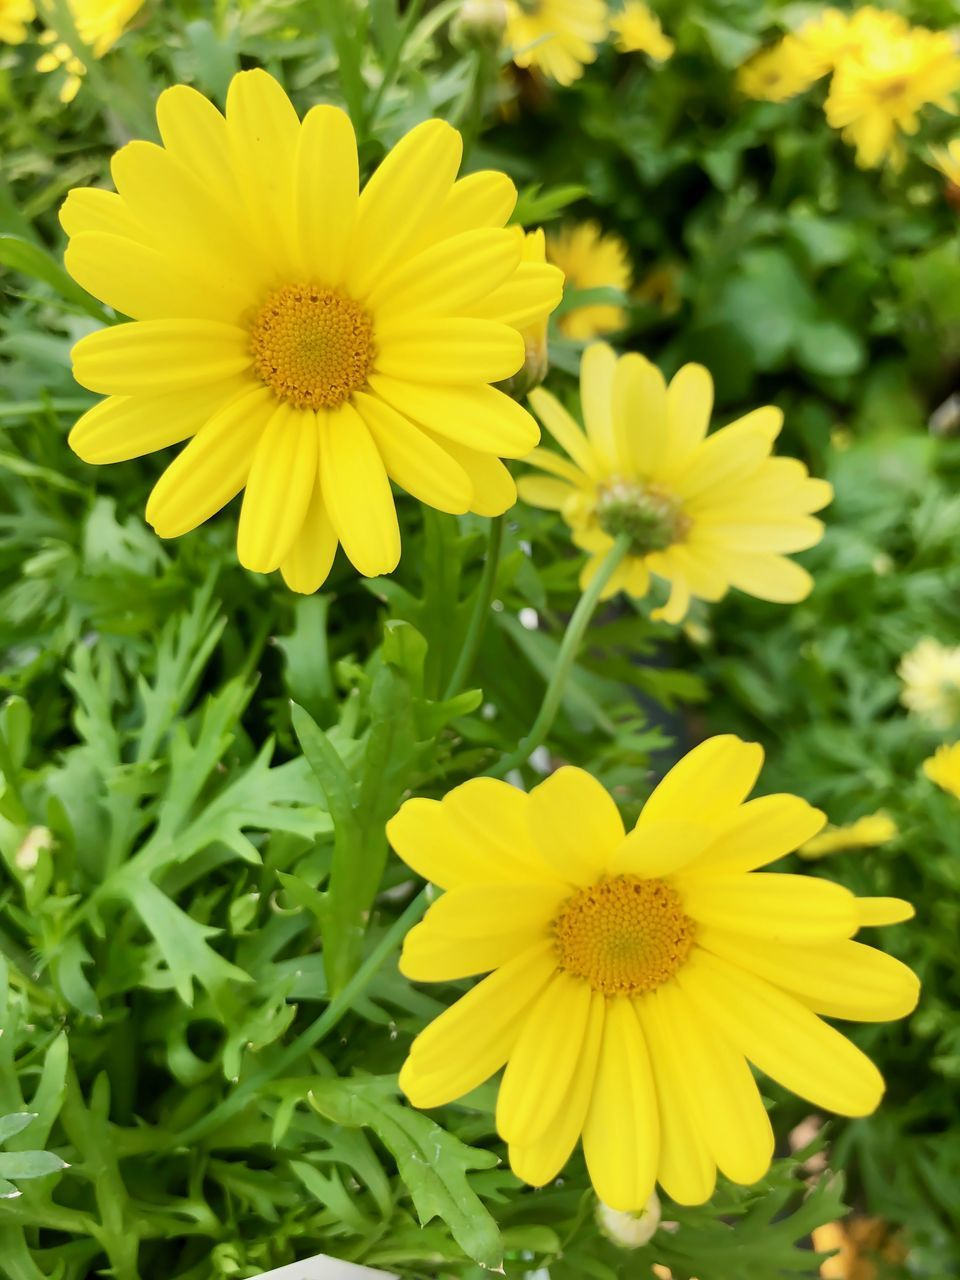 CLOSE-UP OF YELLOW FLOWERS ON FIELD